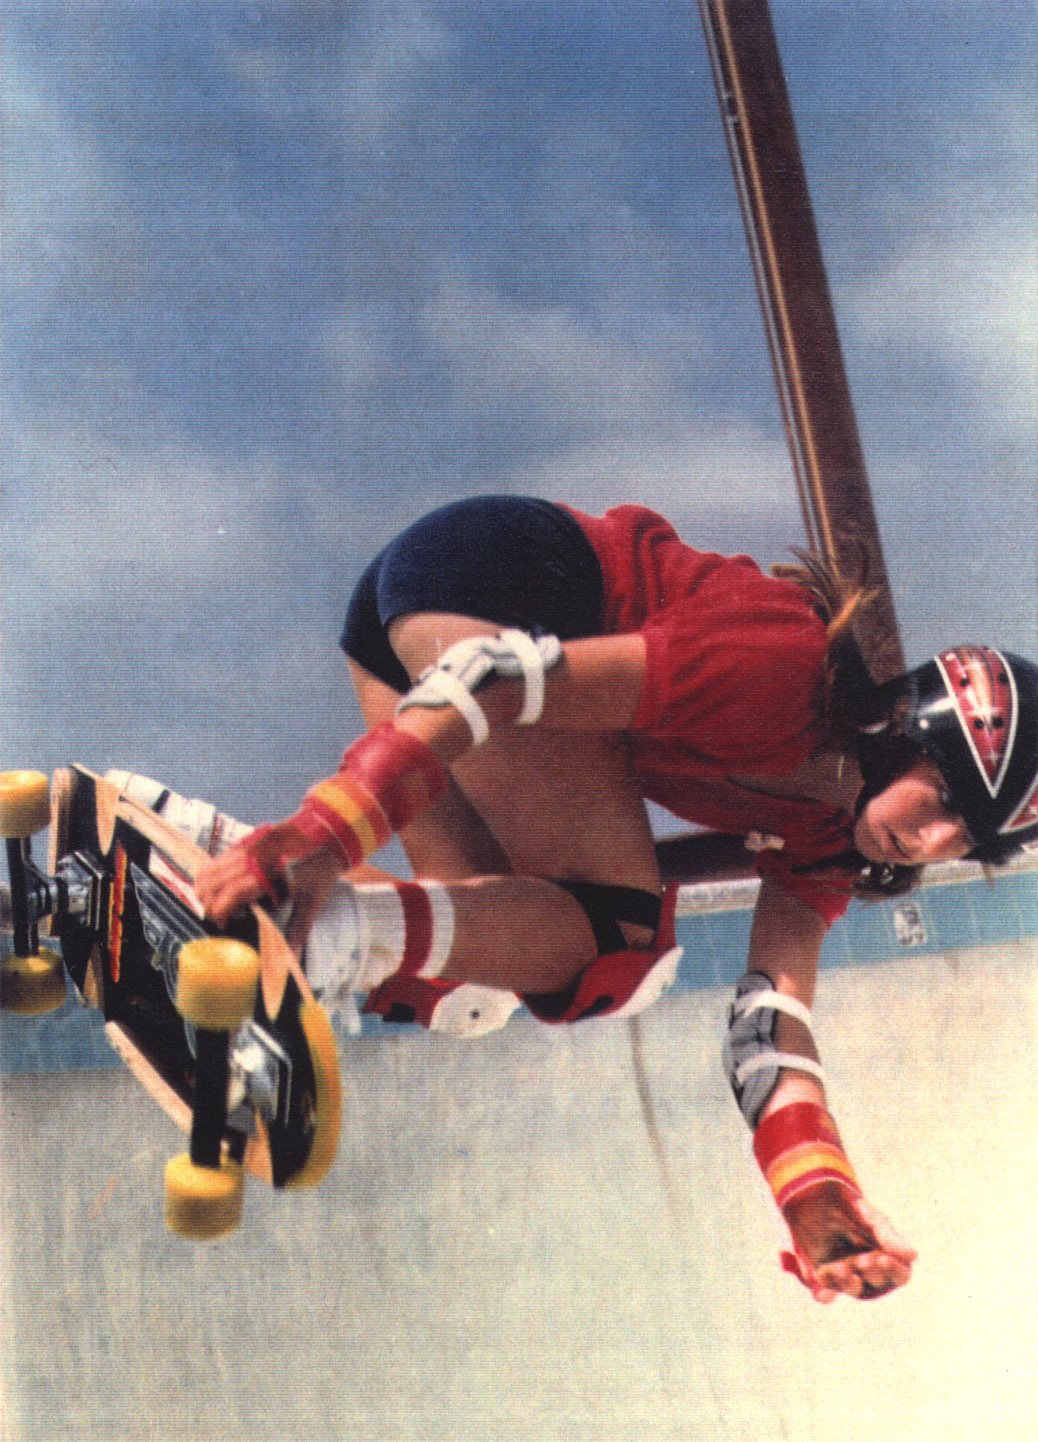 Cindy Whitehead skateboarding in the 70s.